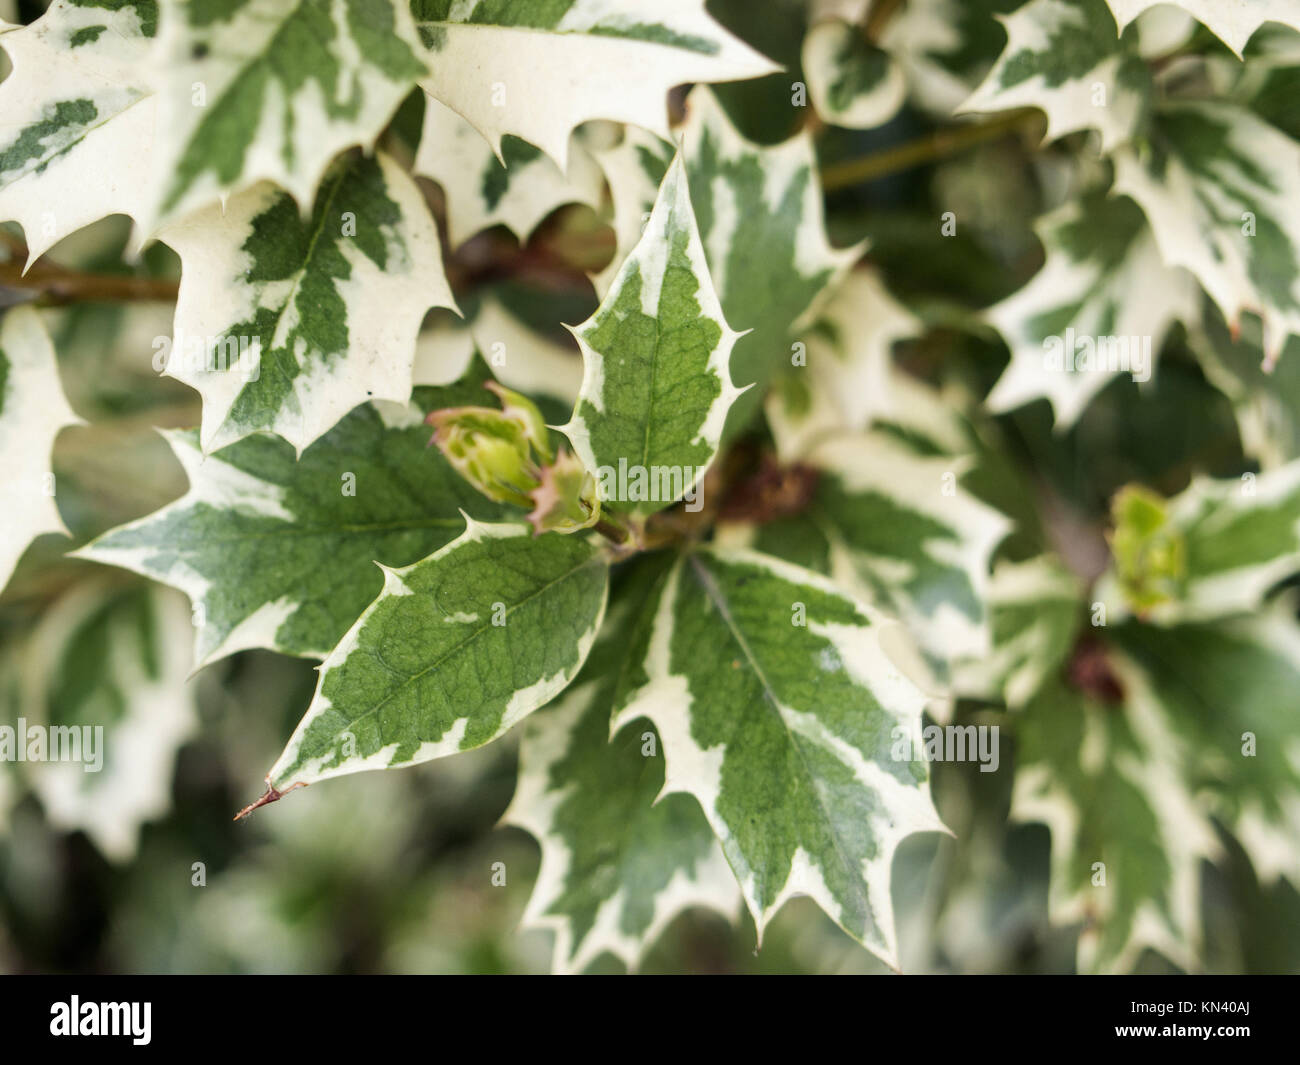 Osmanthus heterophyllus is a species of flowering plant in the olive family Oleaceae, native to eastern Asia in - Stock Image